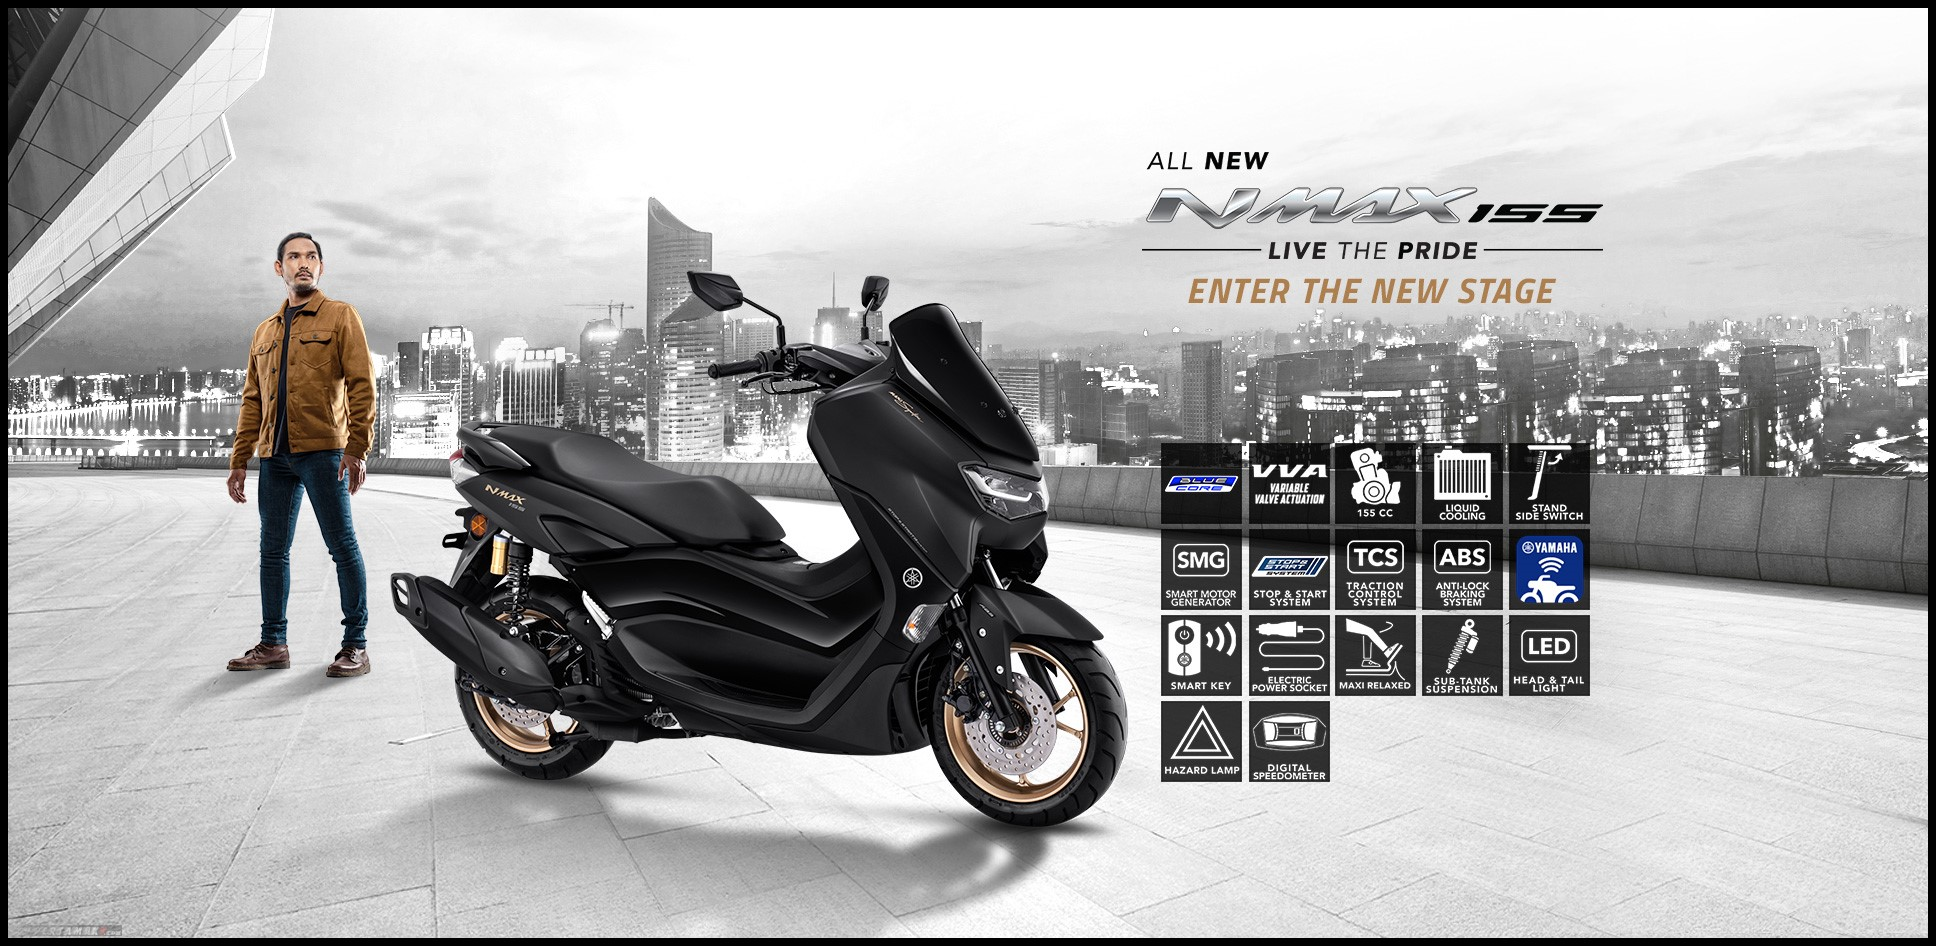 All new Yamaha NMAX ABS Facelift 2020 Warna Hitam Dop